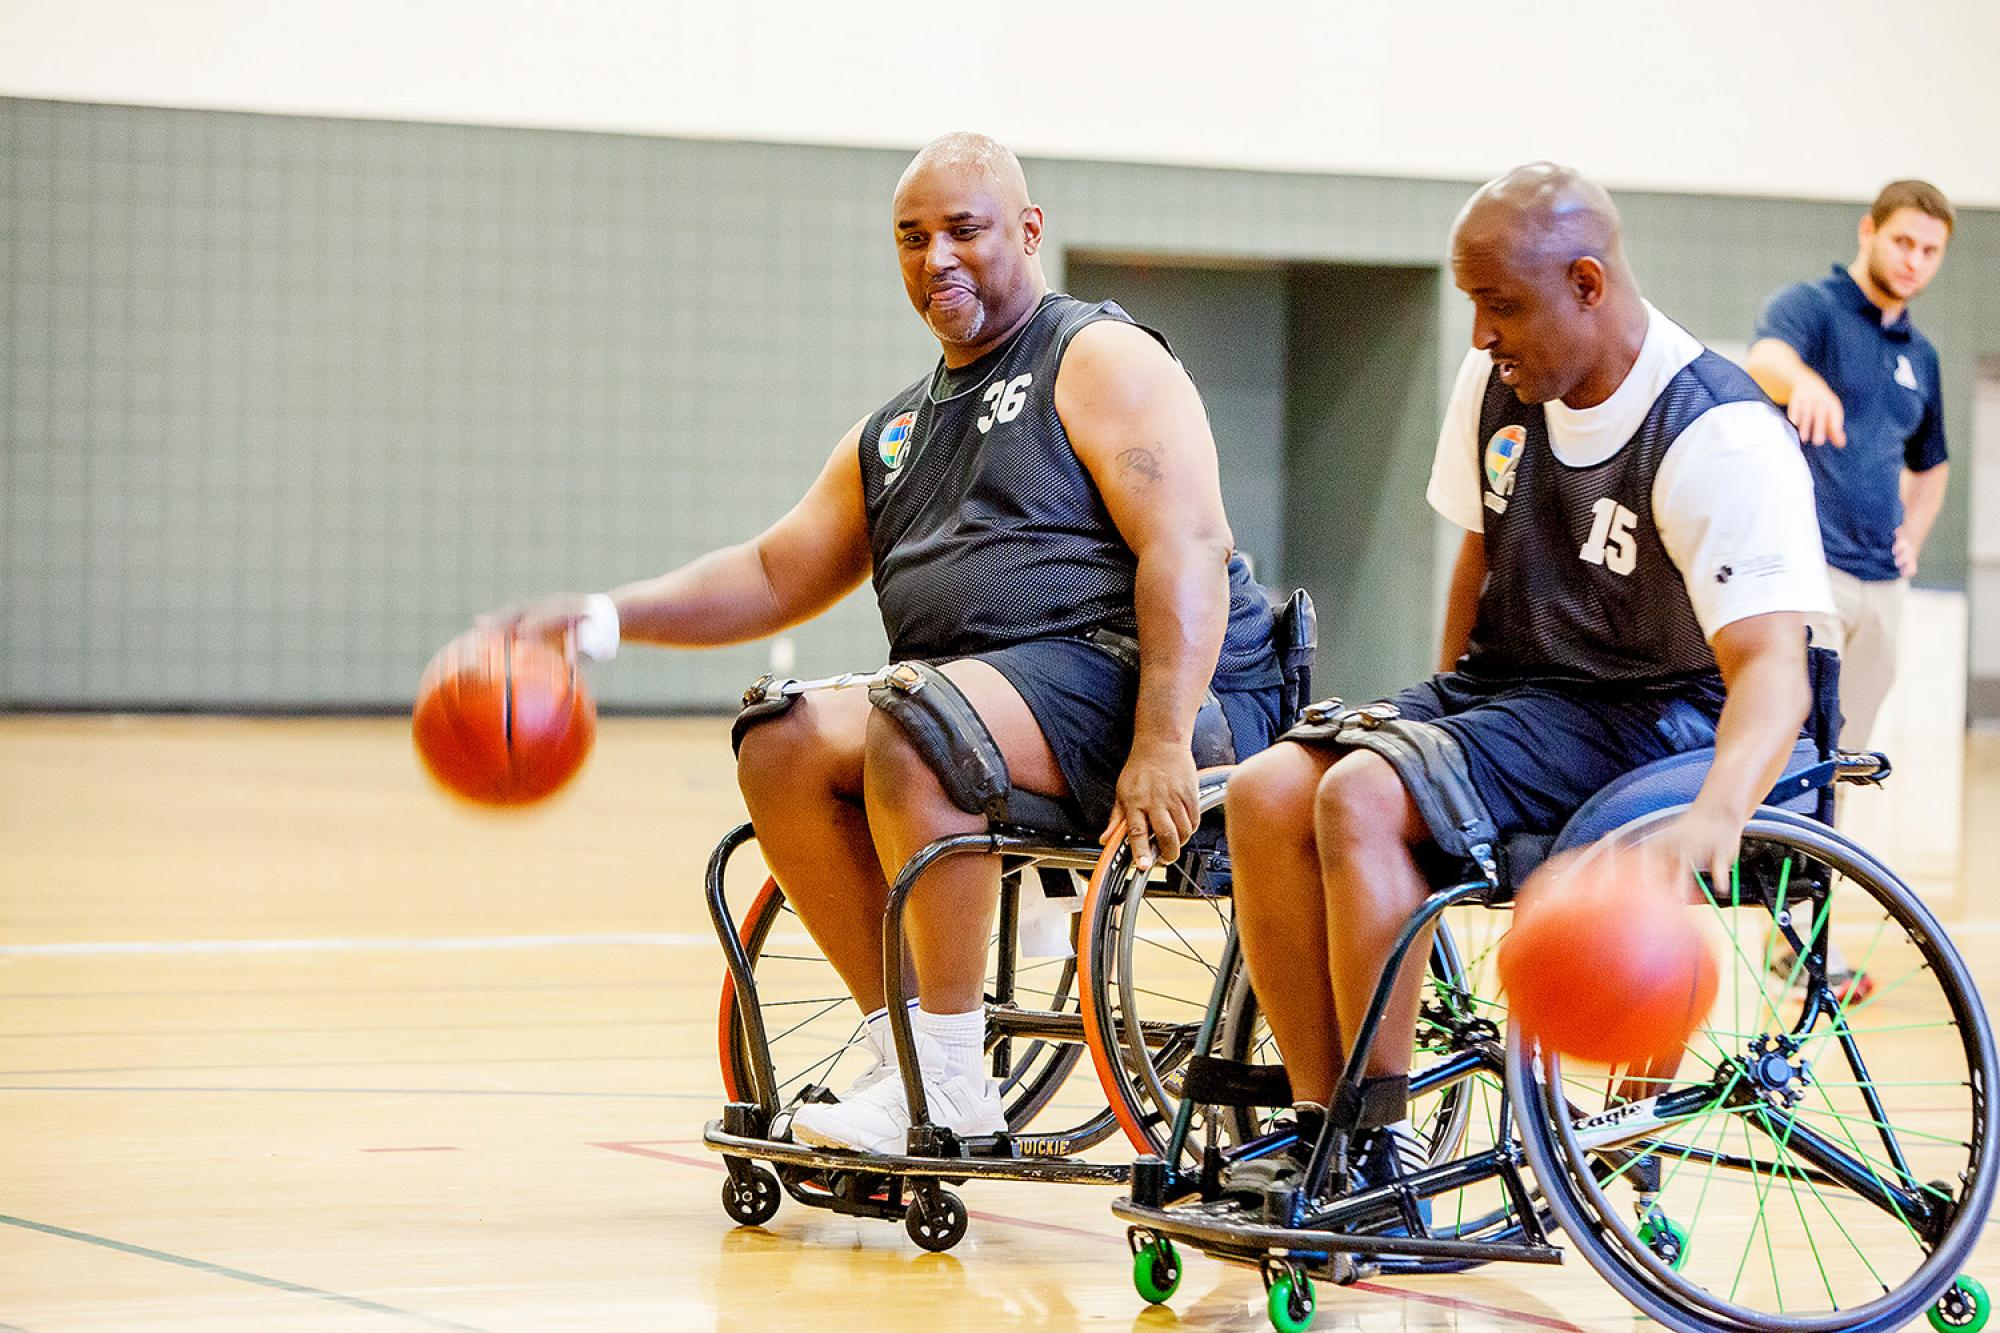 Friends Derrick McMillon and Robert Jones are first-time participants at the UA. Both had just participated in a National Wheelchair Basketball Association championship game in Kentucky.